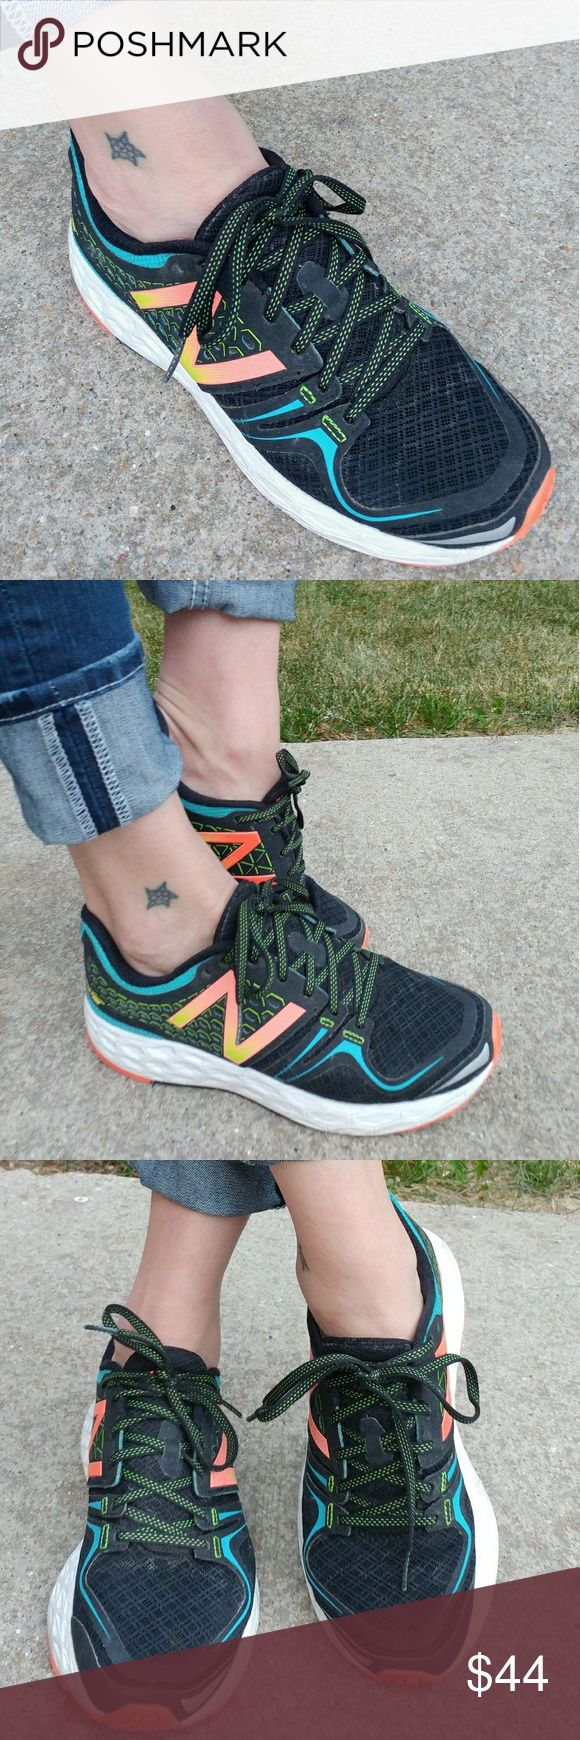 Skate shoes ankle support - New Balance Black Running Shoes Like New Super Cute And So Comfy Lots Of